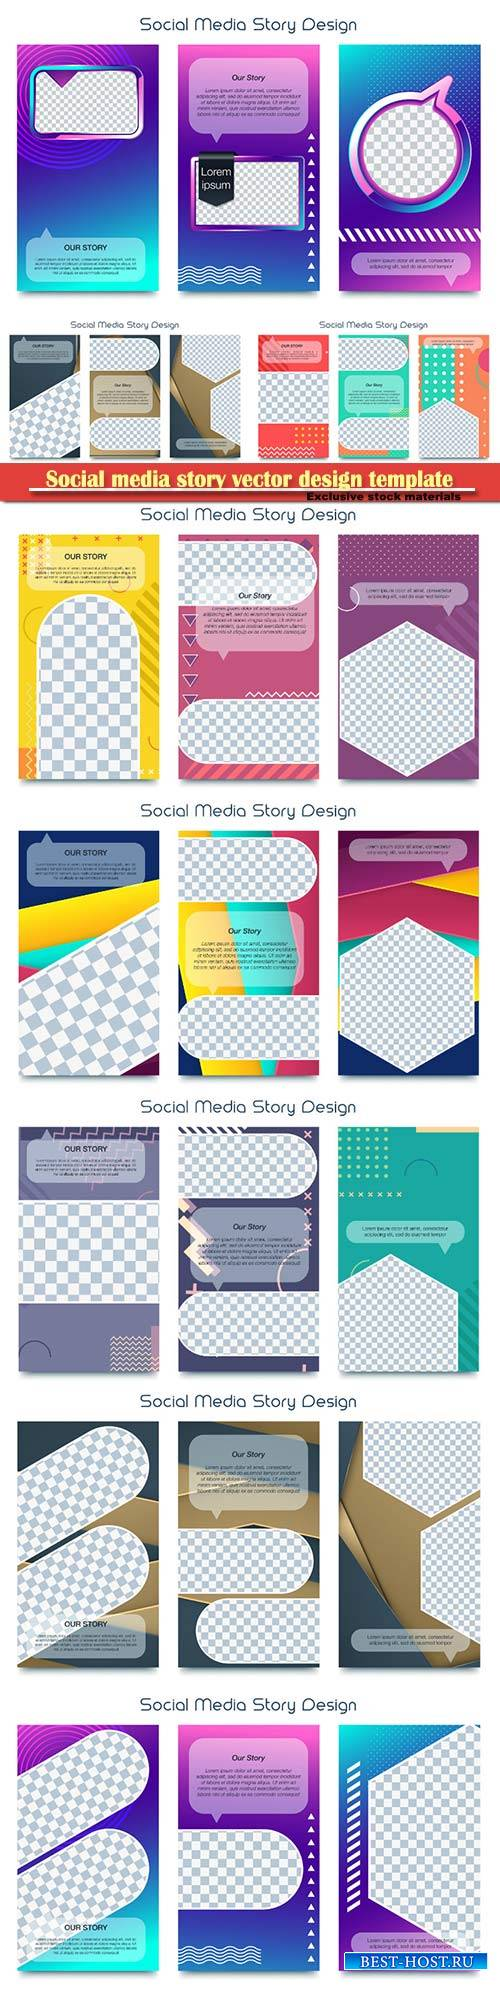 Social media story vector design template